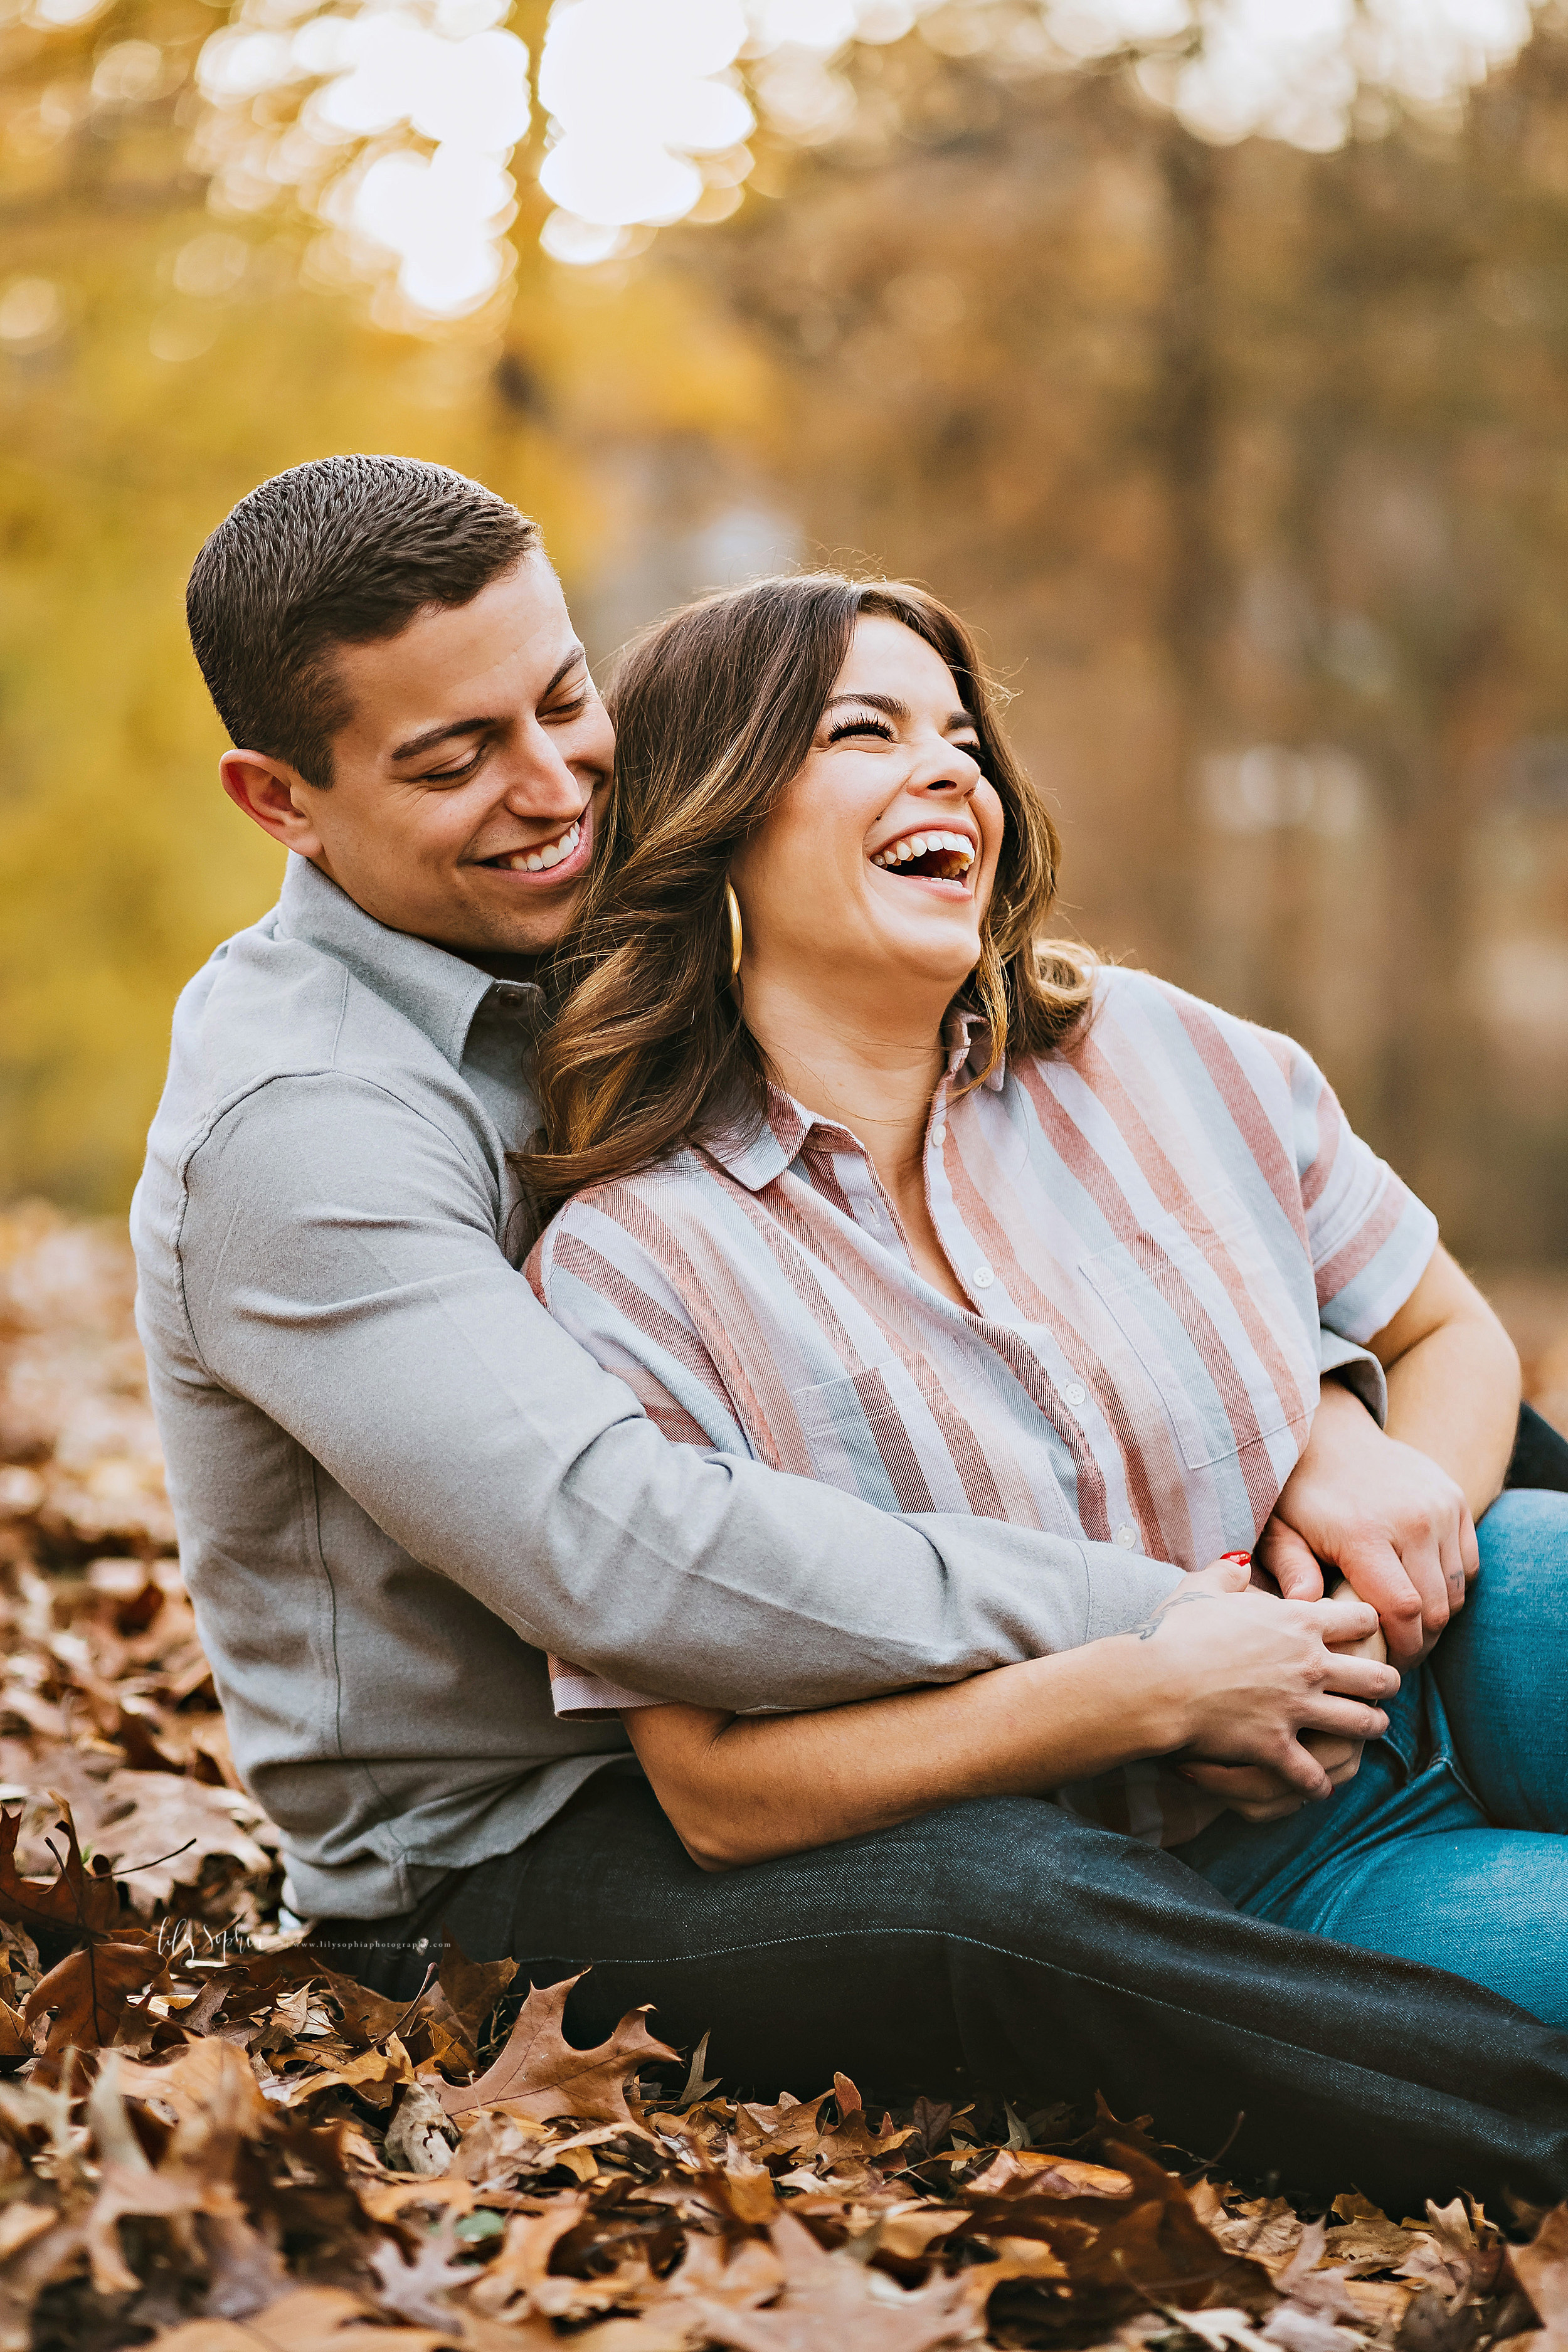 Photograph of a happy Atlanta couple during the fall in a park in natural light.  The woman is sitting between the man's legs with her back to his chest.  The man has his arms around her at her waist and she is holding his hands.  Both of them are laughing.